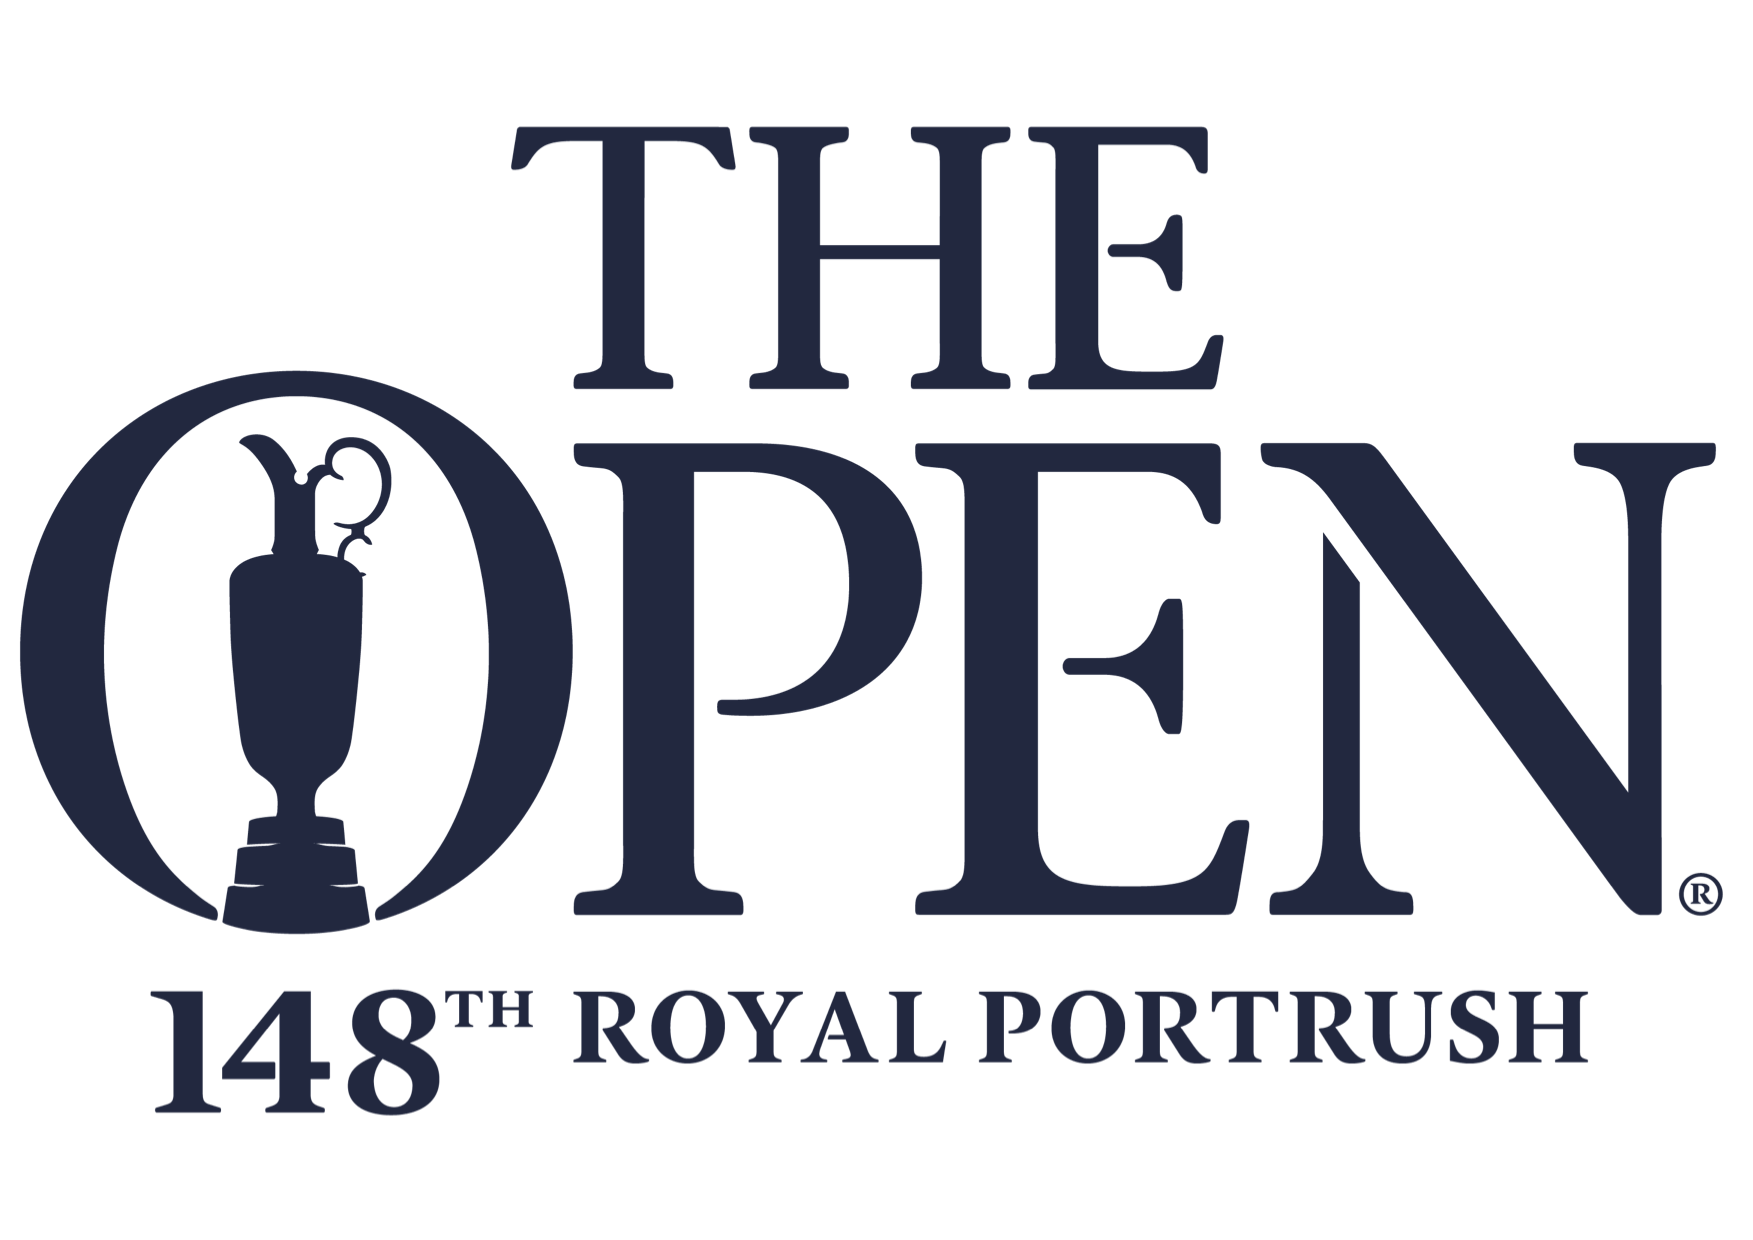 The 148th Open at the Royal Portrush